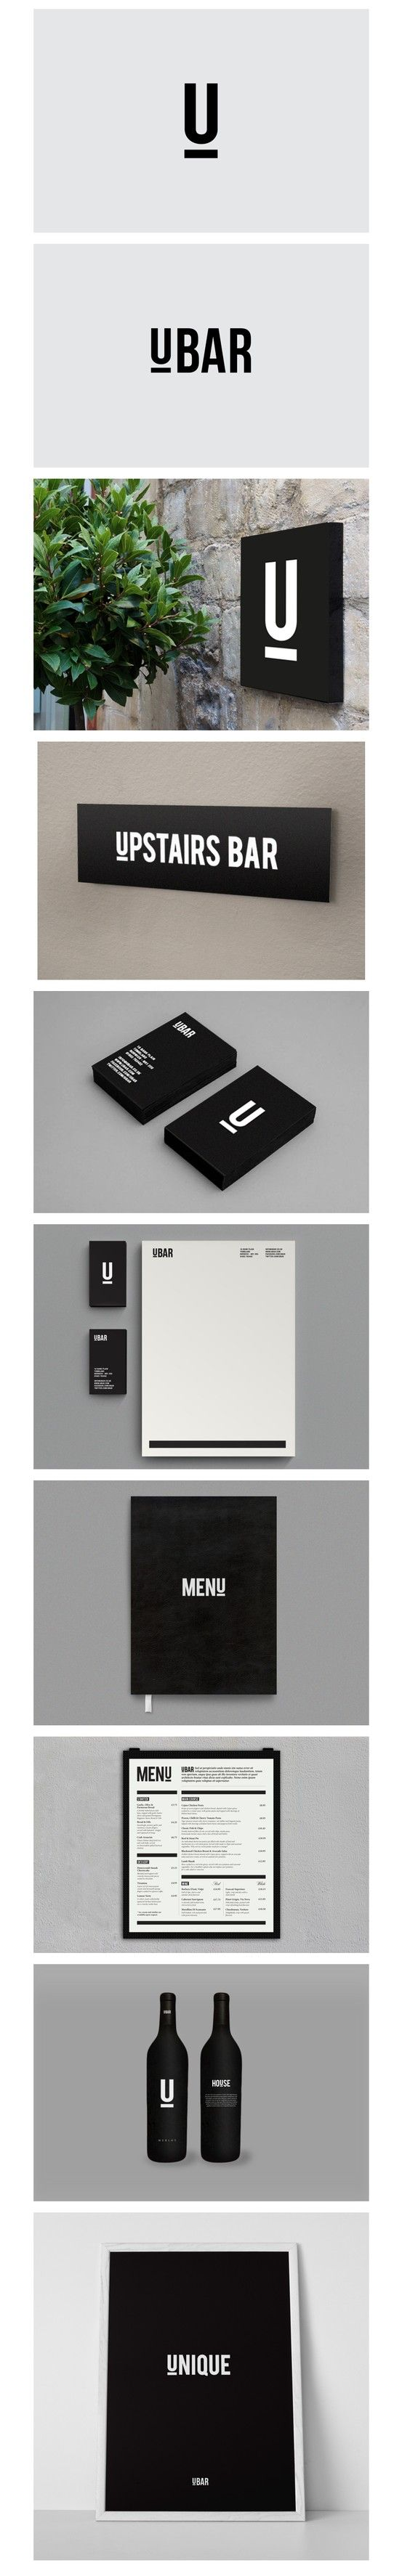 U | #stationary #corporate #design #corporatedesign #logo #identity #branding #marketing < repinned by www.BlickeDeeler.de